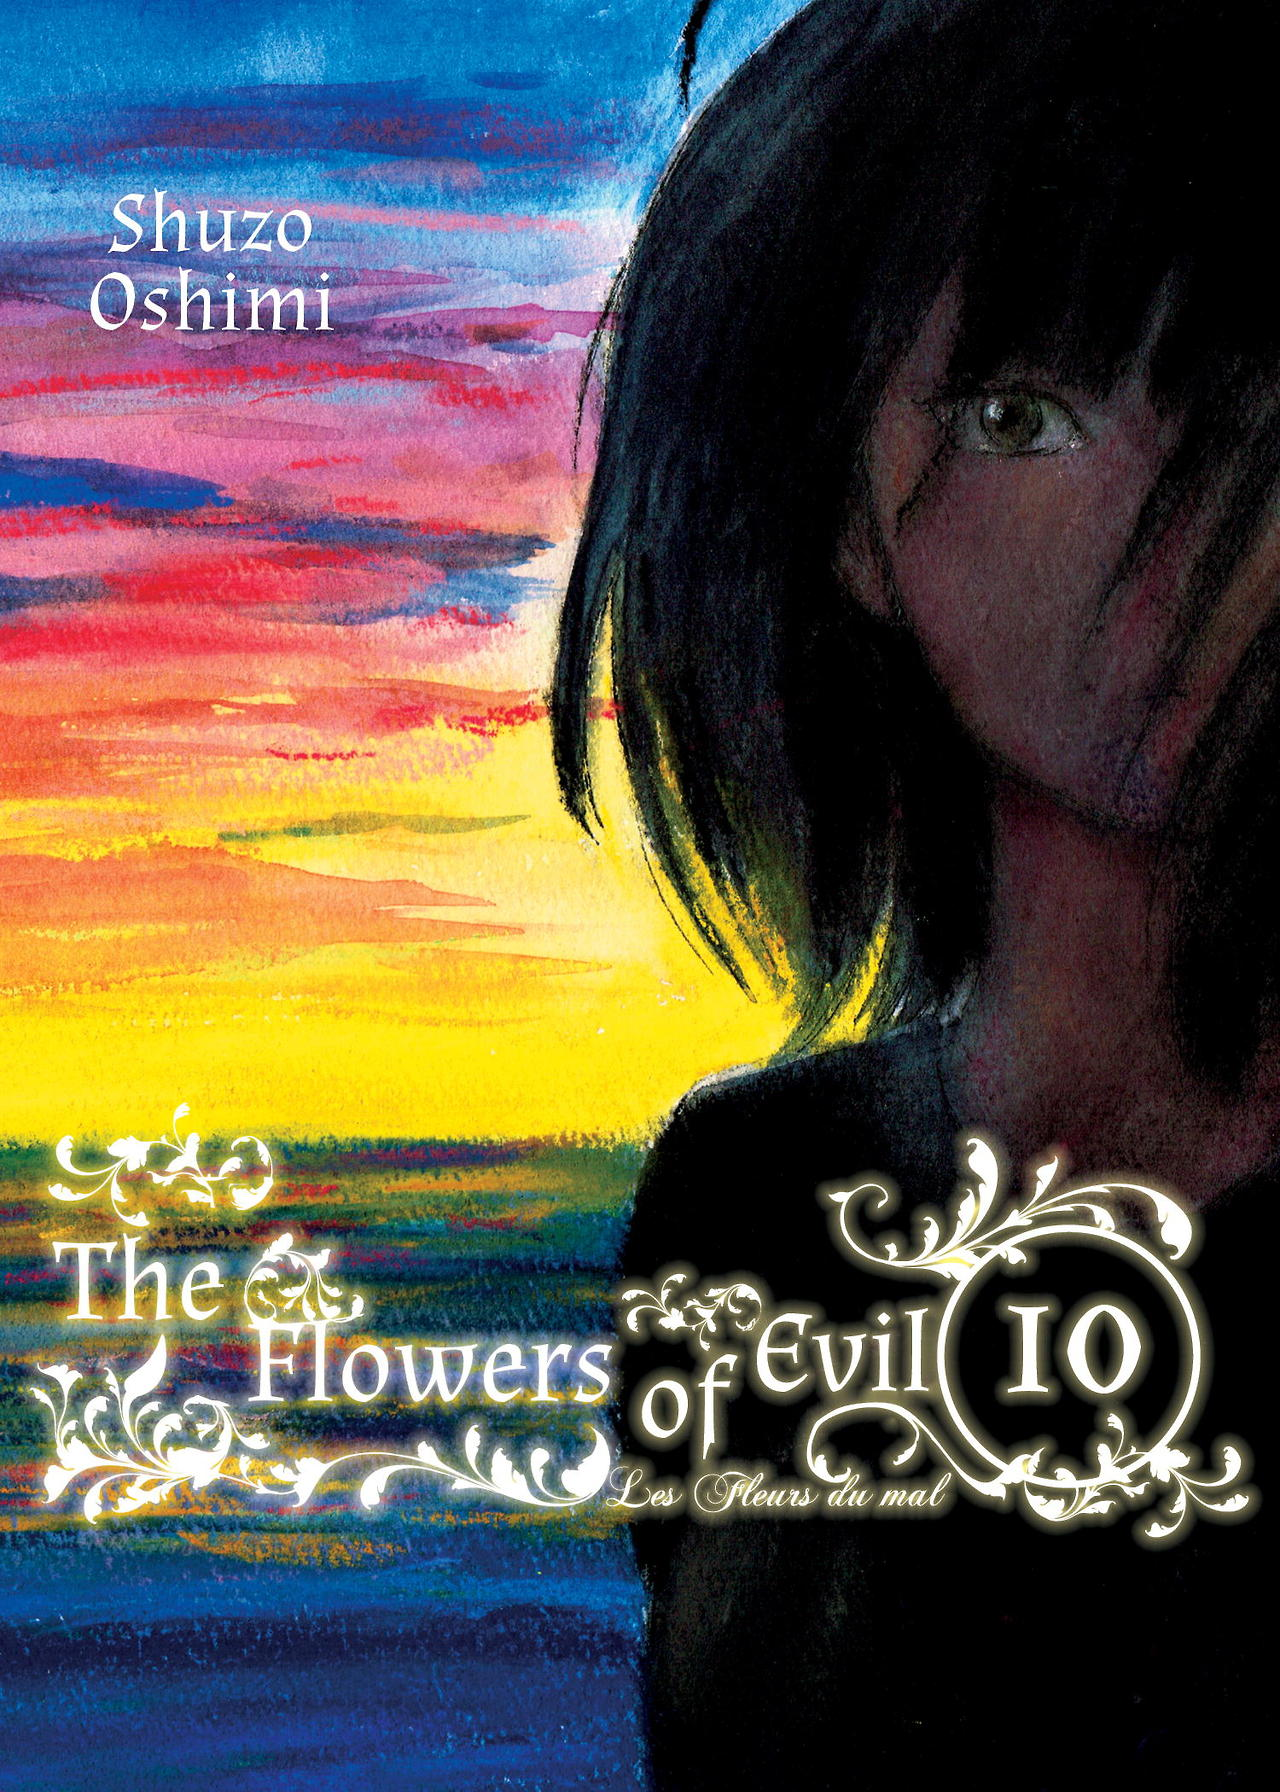 The Flowers of Evil vol 10 by Shuzo Oshimi translated by Paul Starr